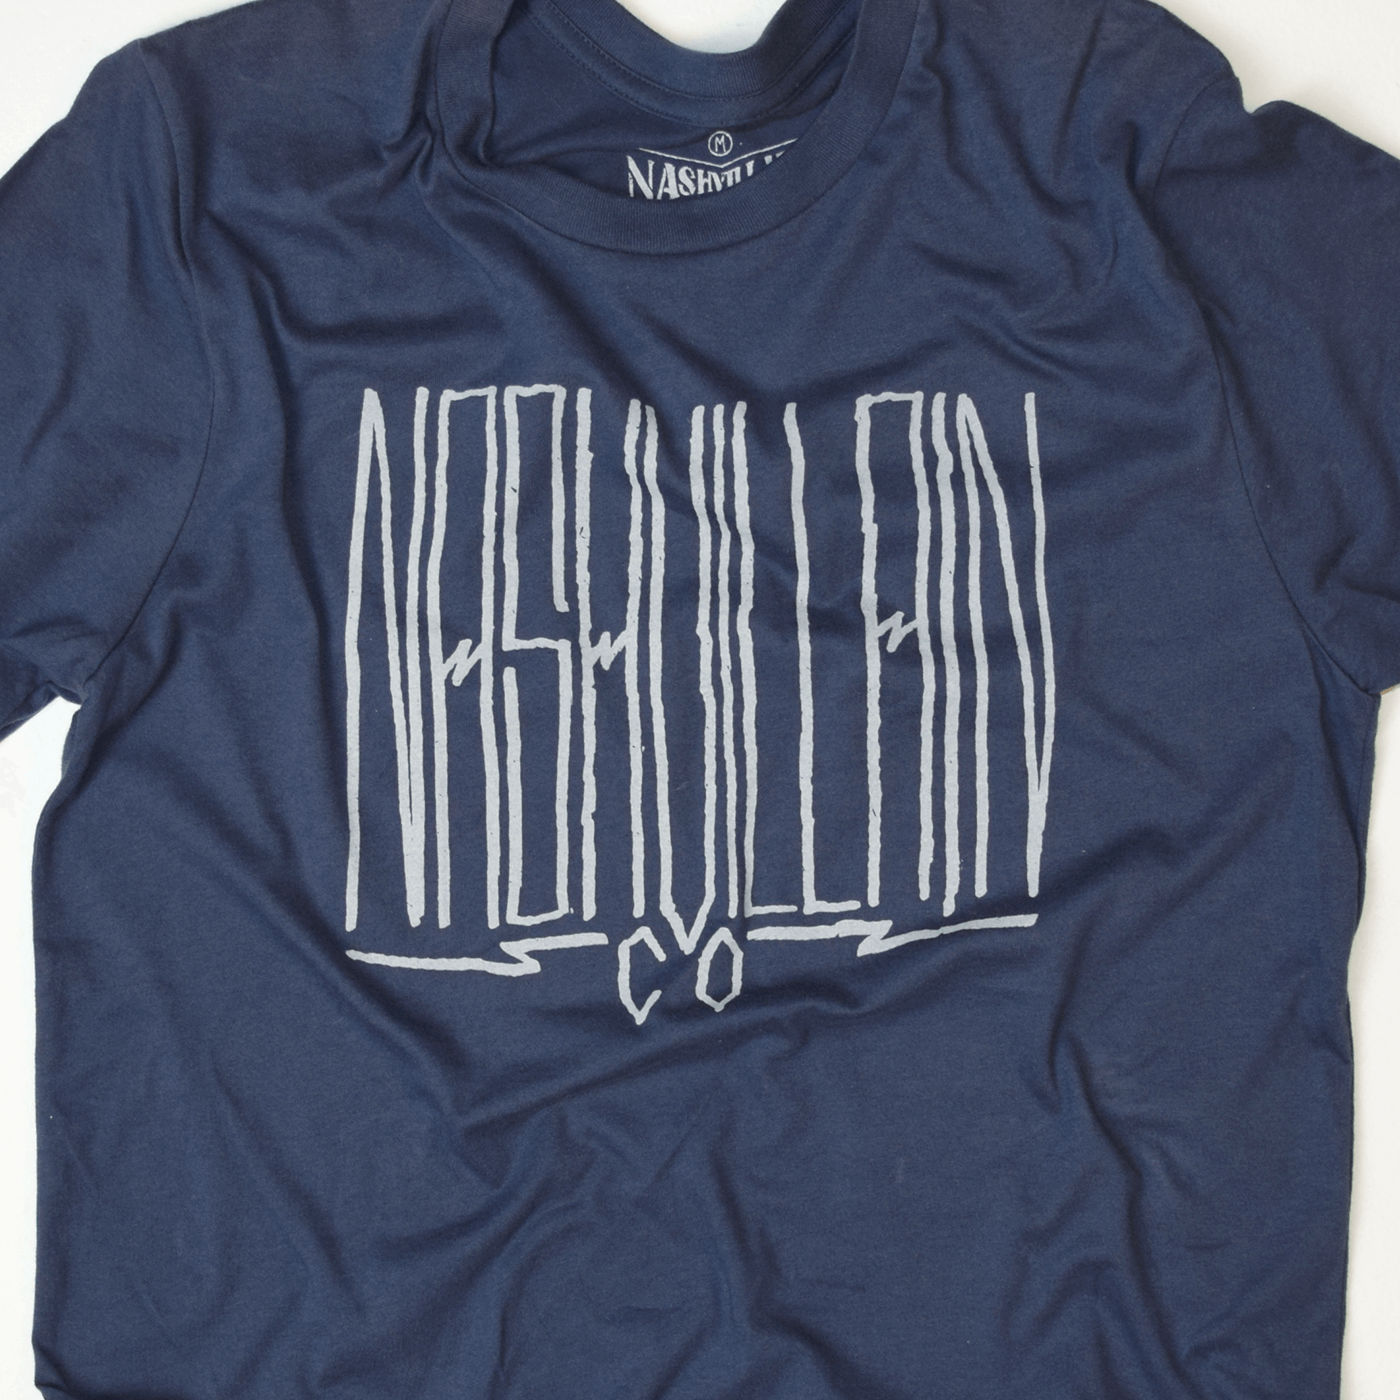 Tall boy hand written nashvillain type graphic design shirt